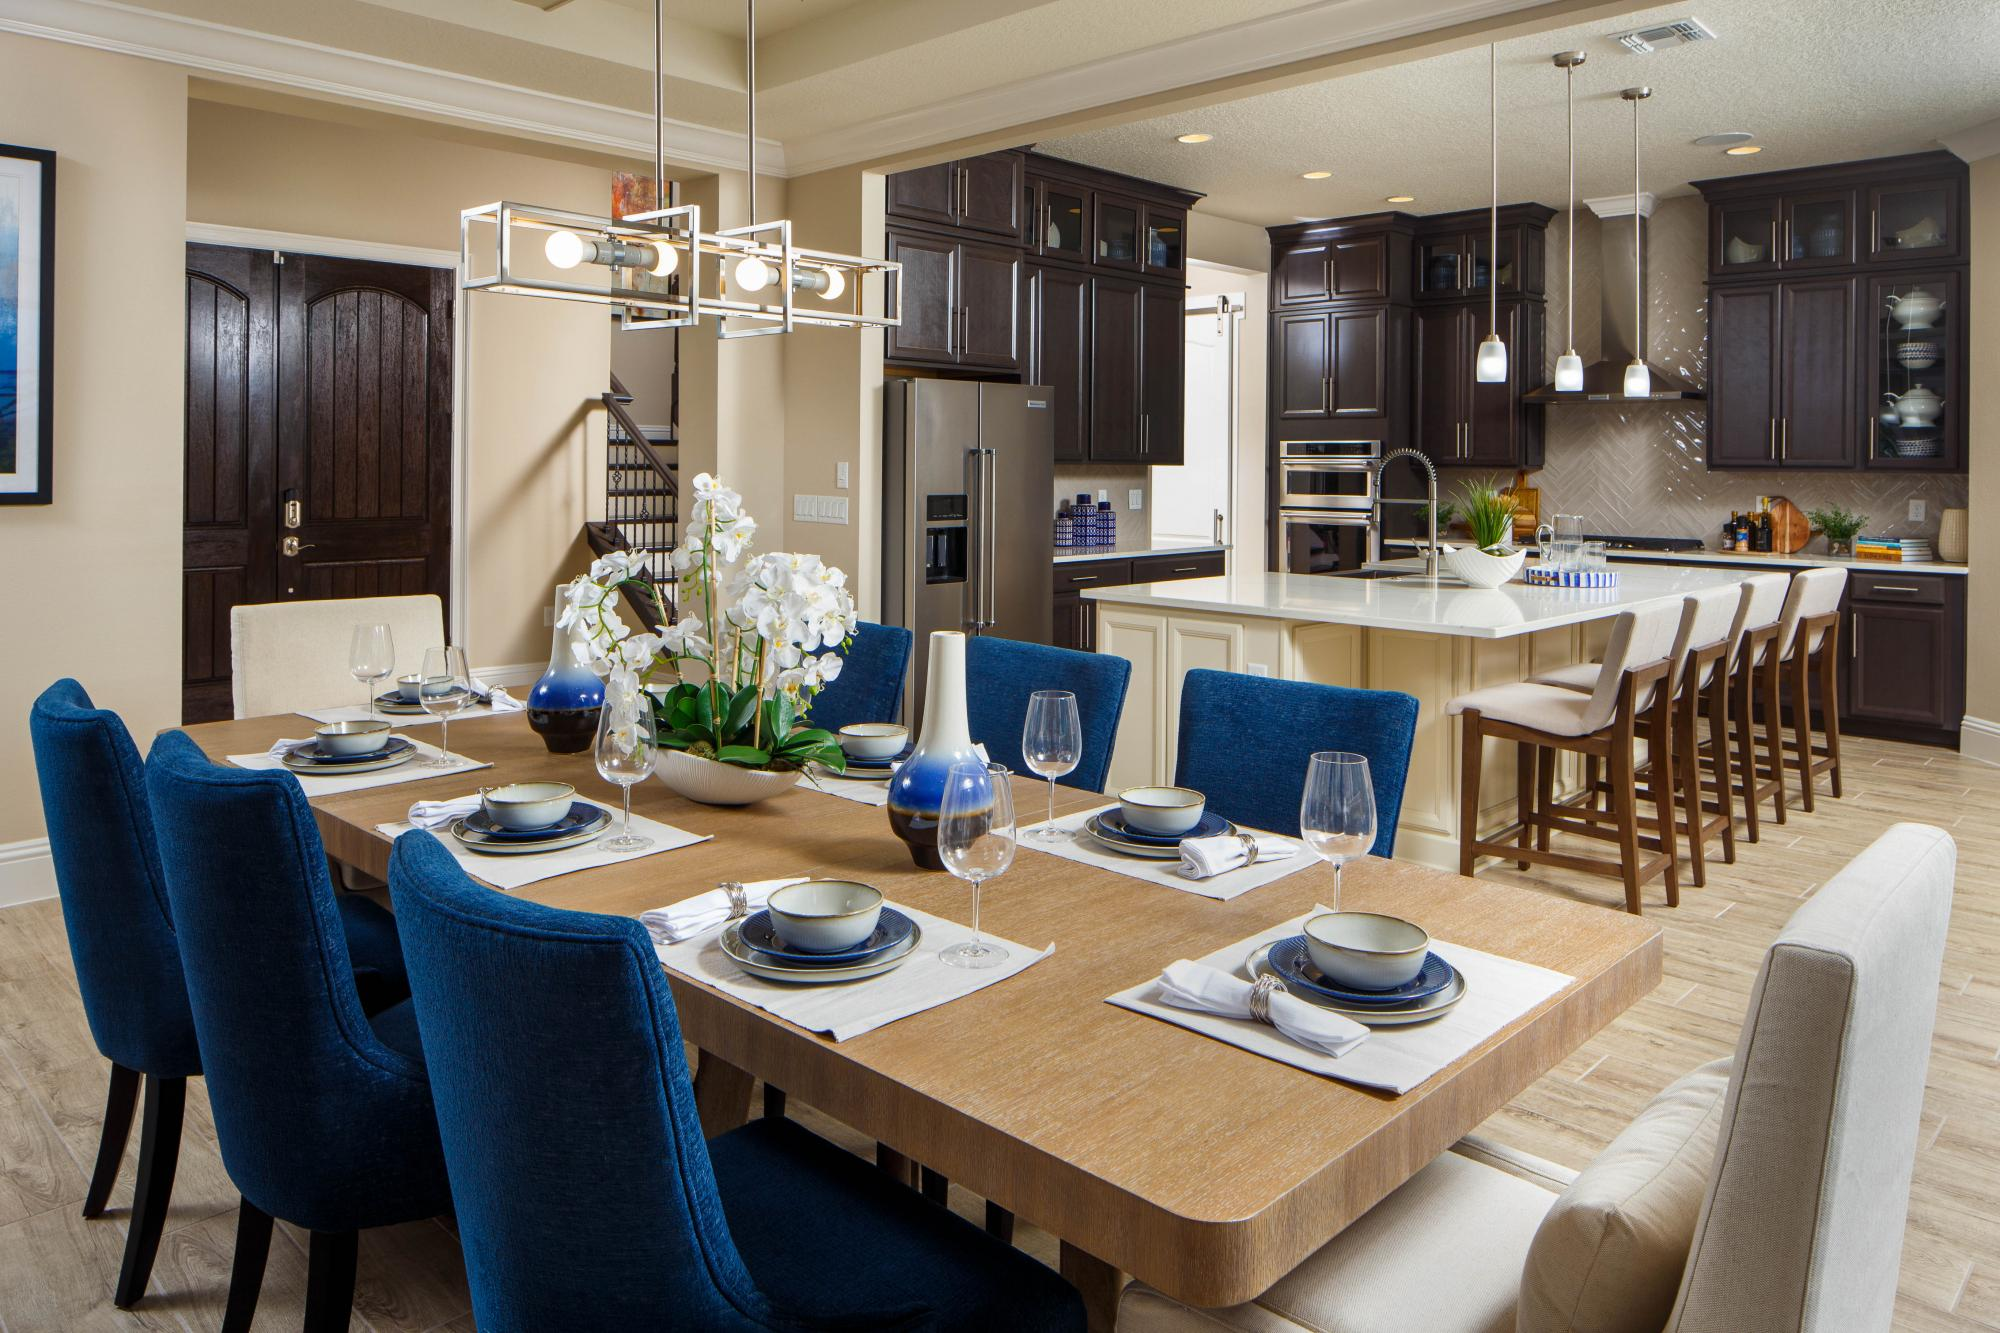 545698273926973_avalon_cove_dining